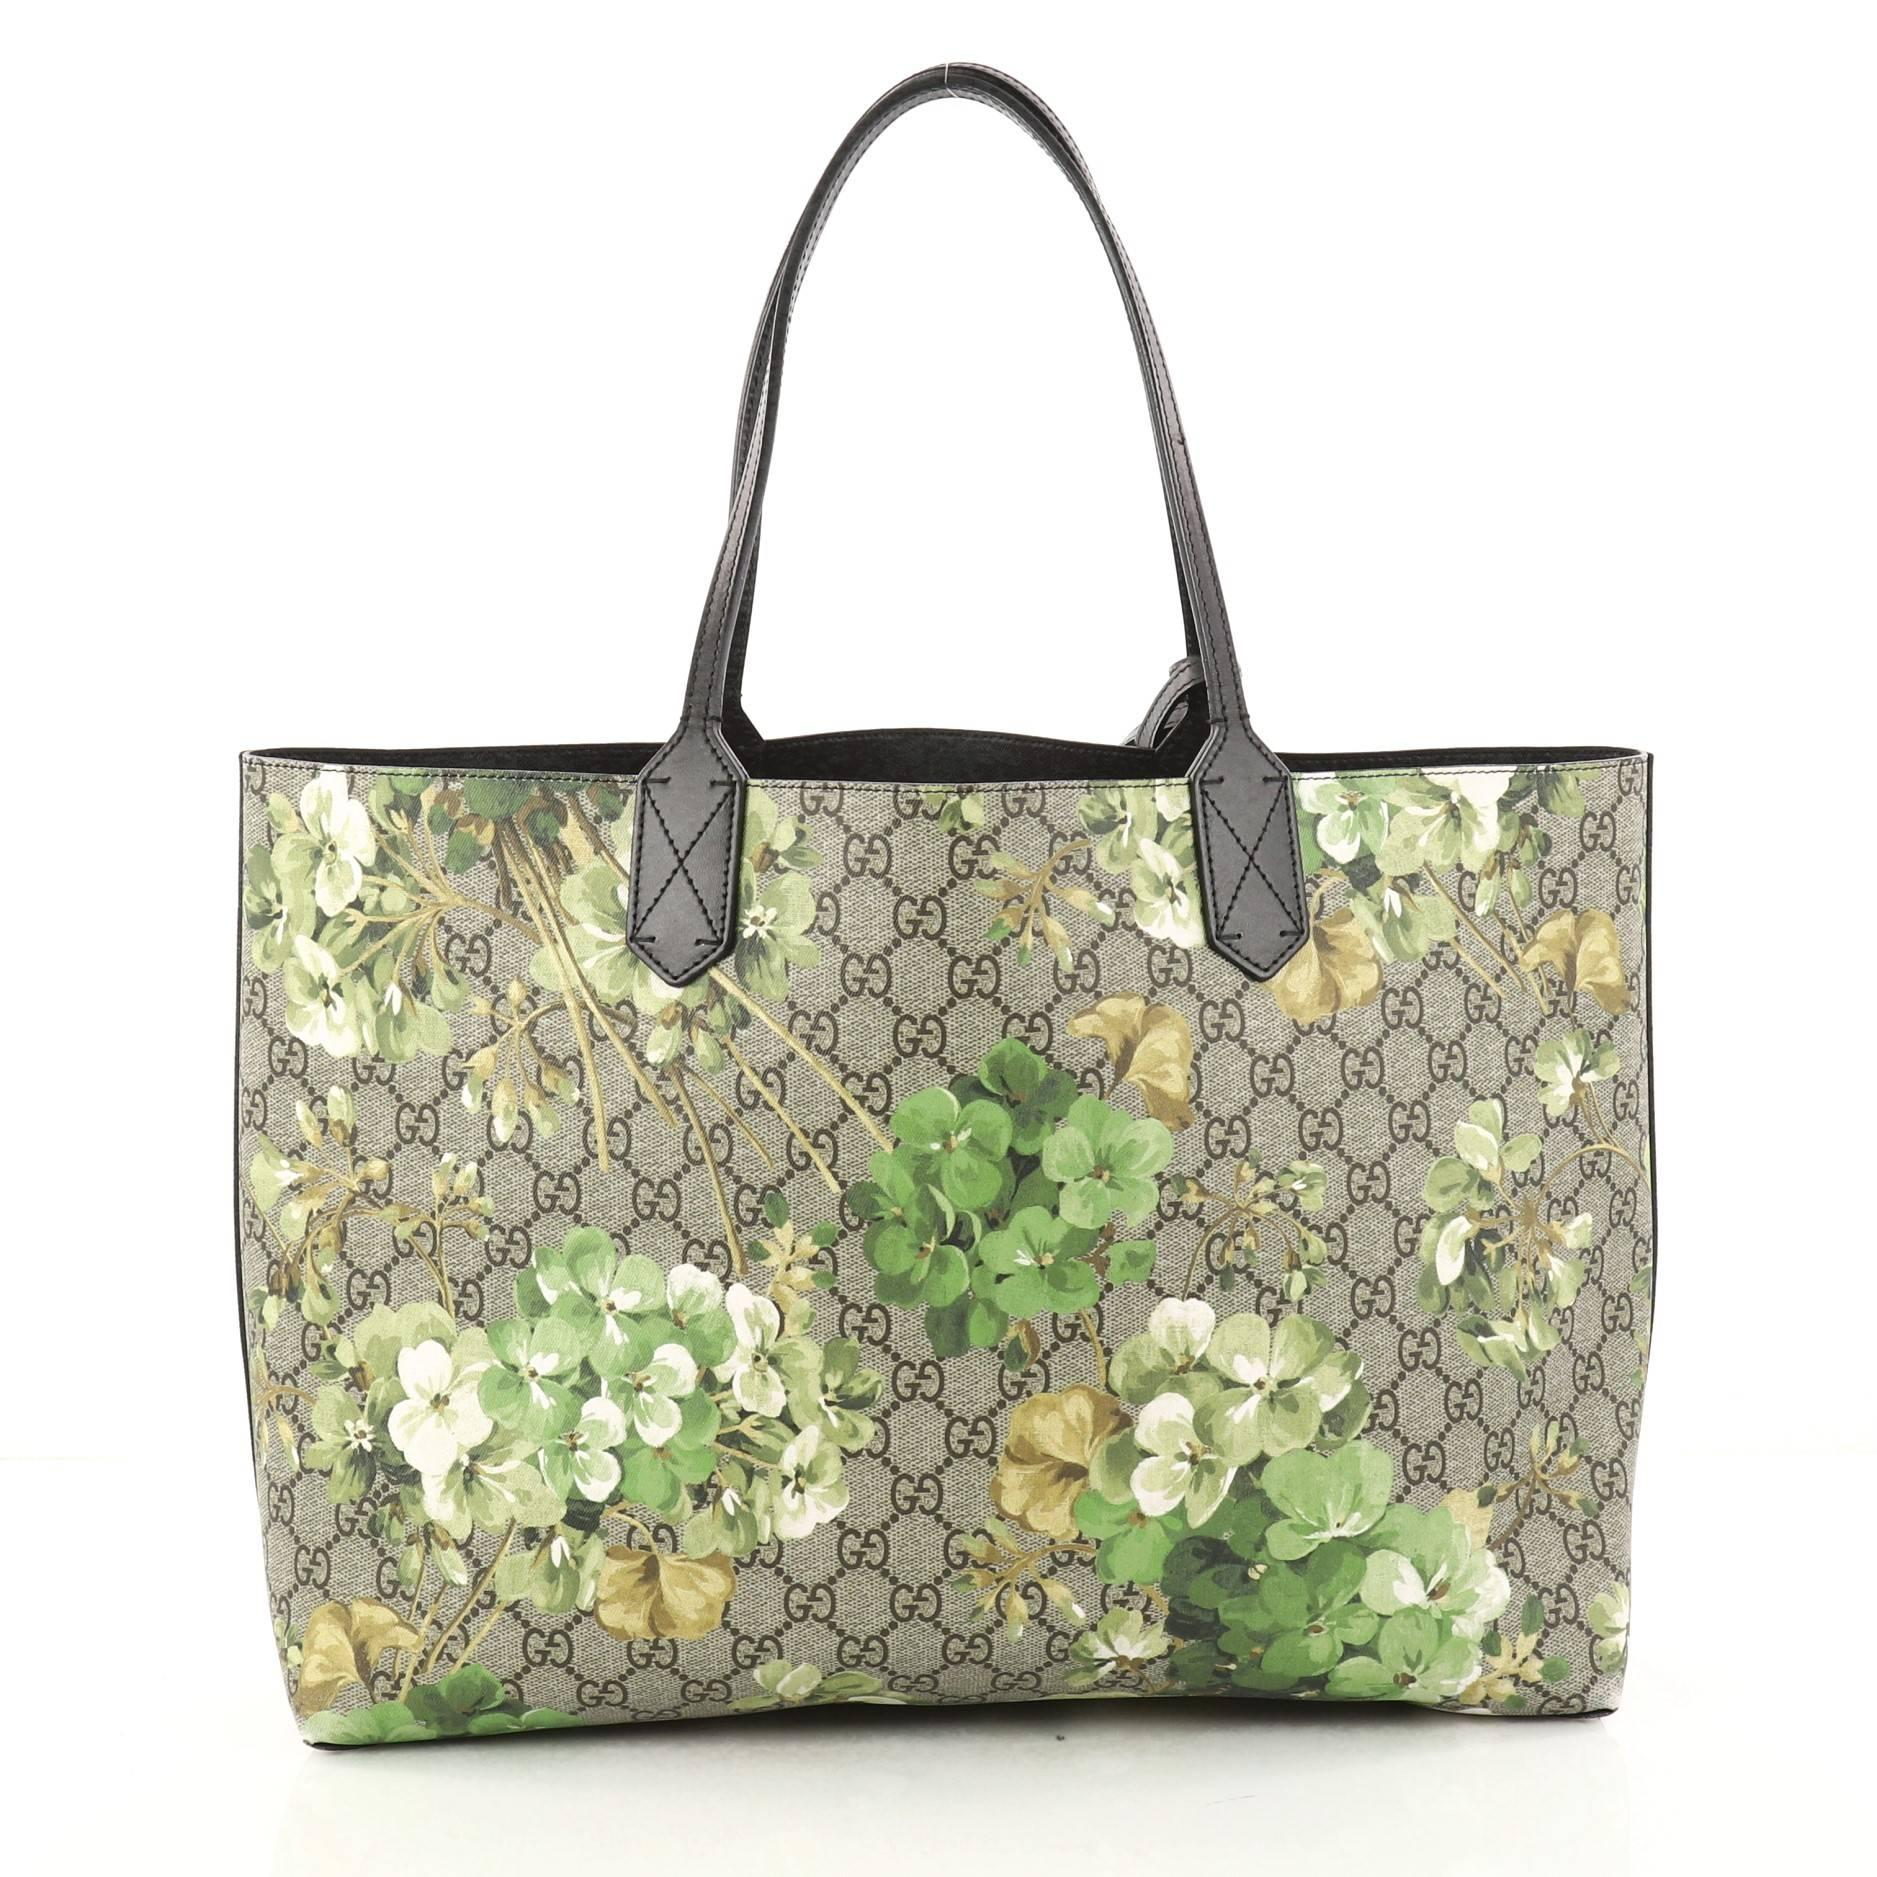 9b12c7d88e1 Gucci Reversible Tote Blooms GG Print Leather Medium at 1stdibs